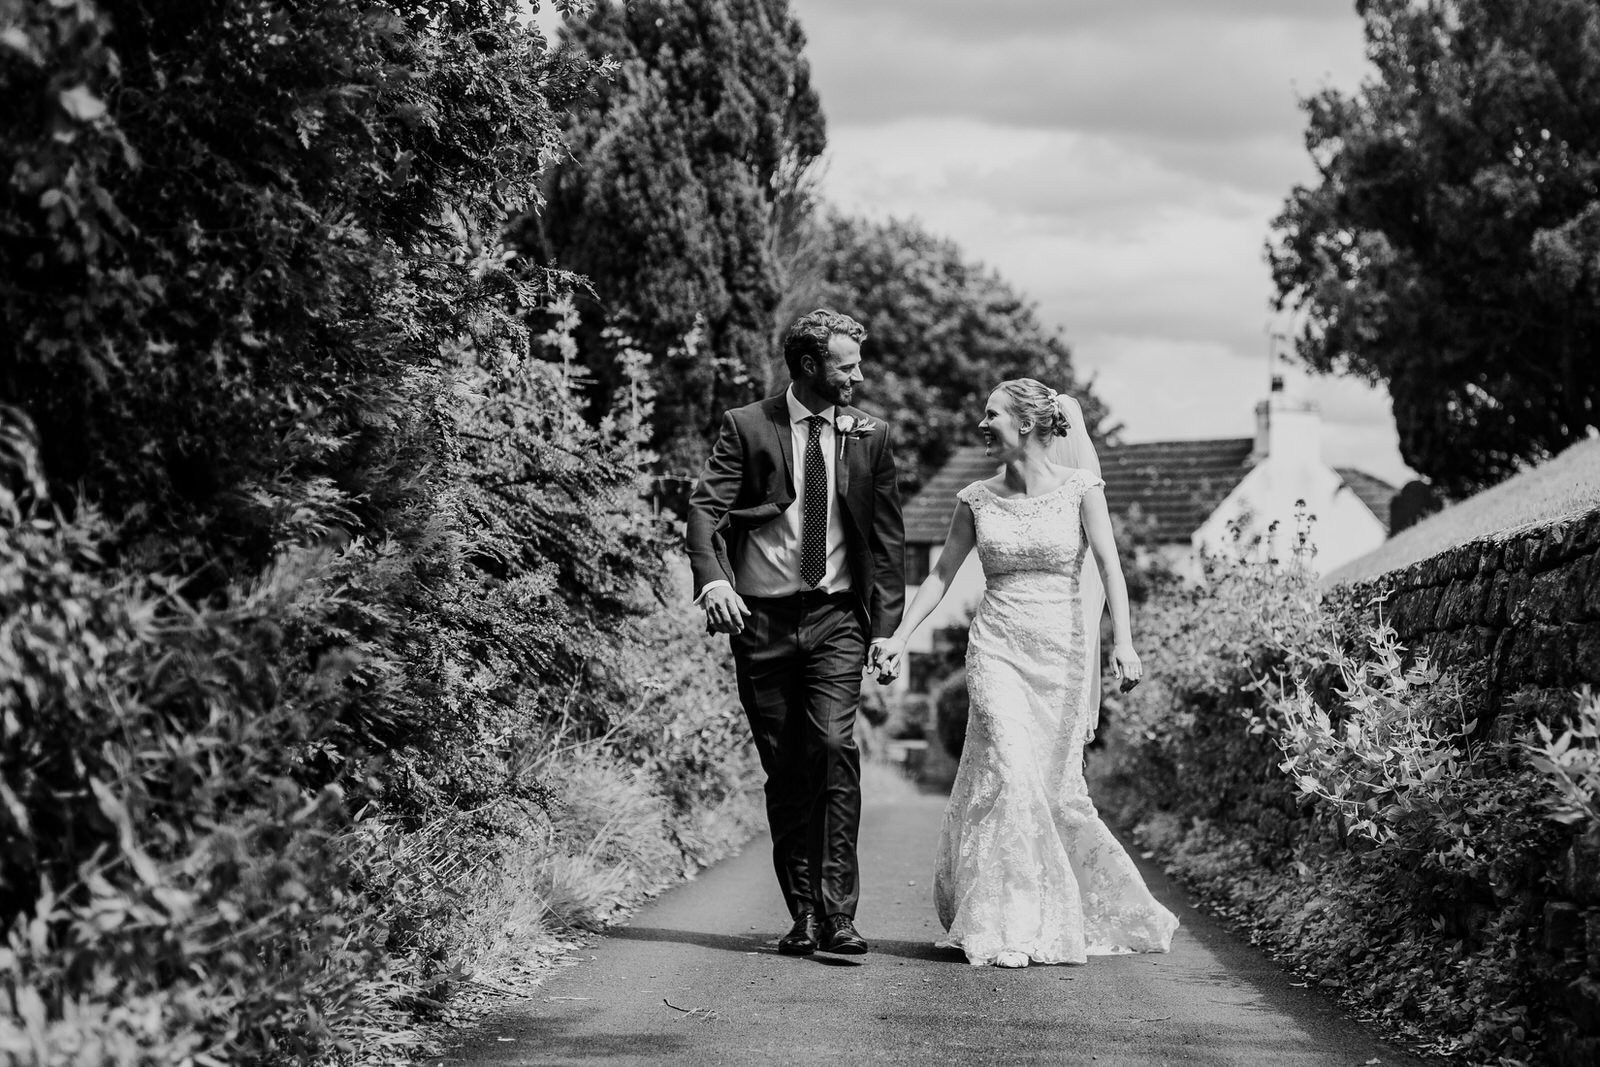 Bride and groom walking down a lane, in black and white